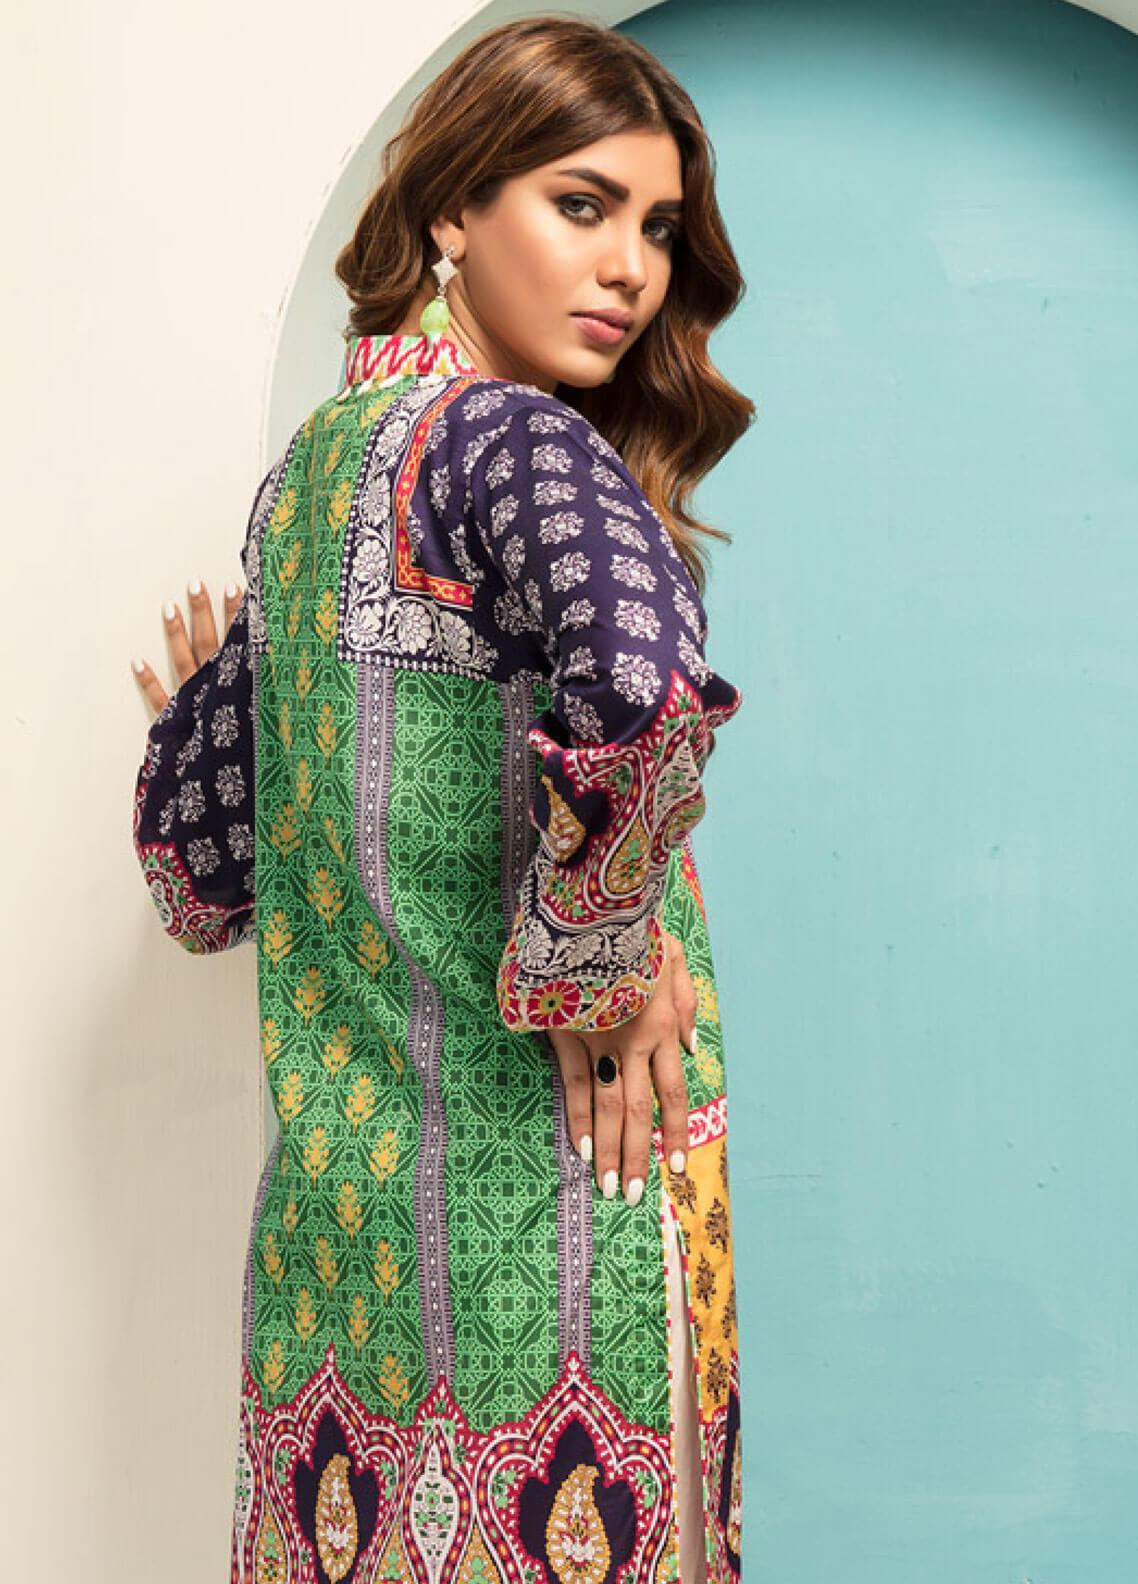 03856a7a6a Sanoor by Noor Fatima Printed Lawn Unstitched Kurties SNO19F 867 - Festive  Collection. Online only